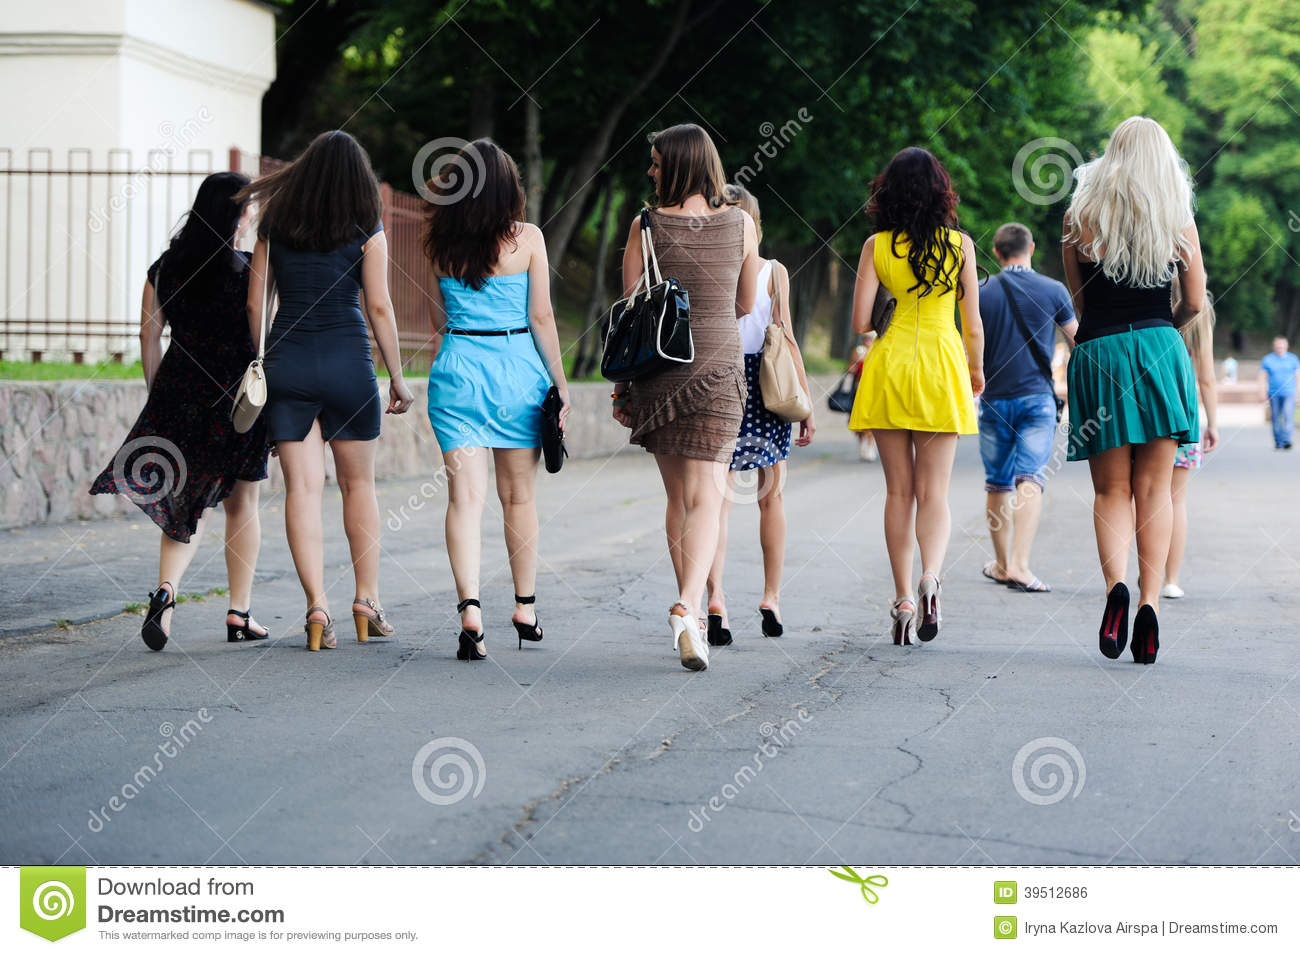 Girls go down the street